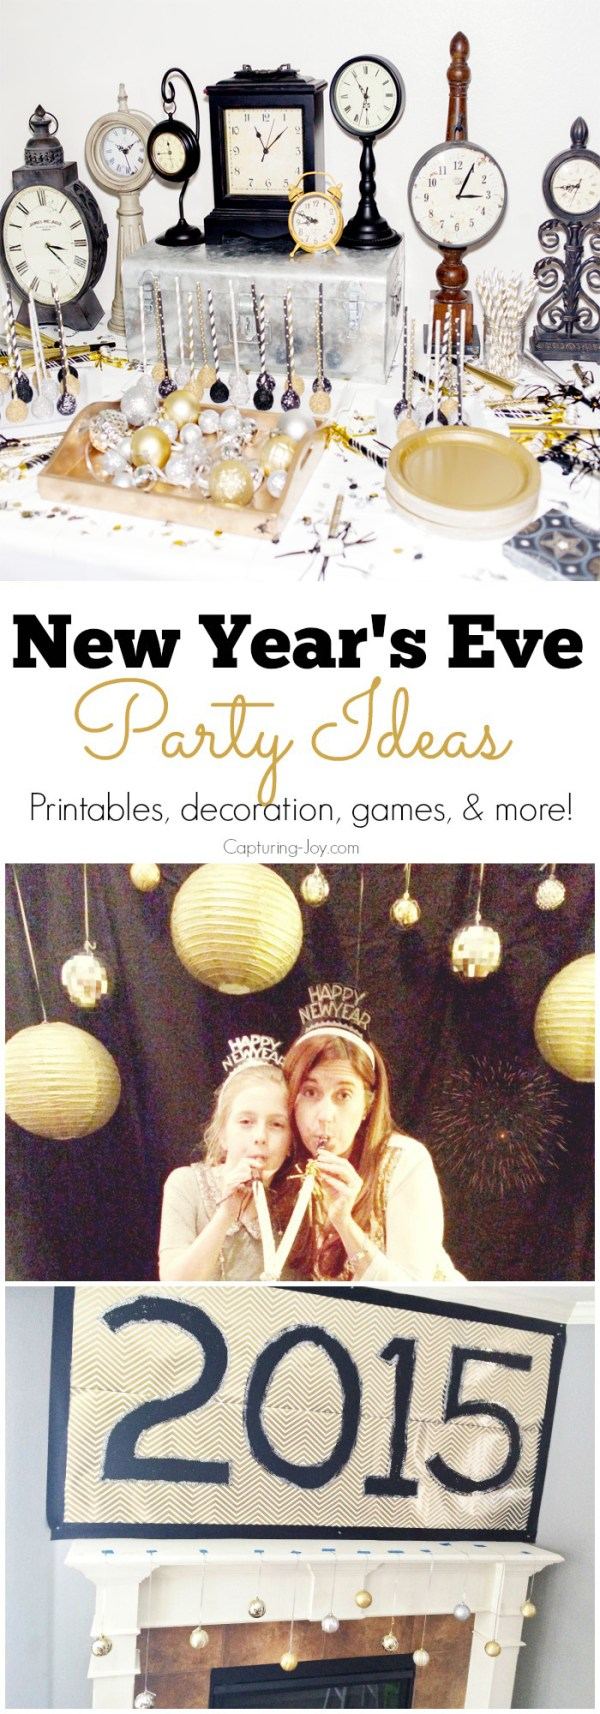 New Years Eve Photo Booth Free Printables - Capturing Joy ...